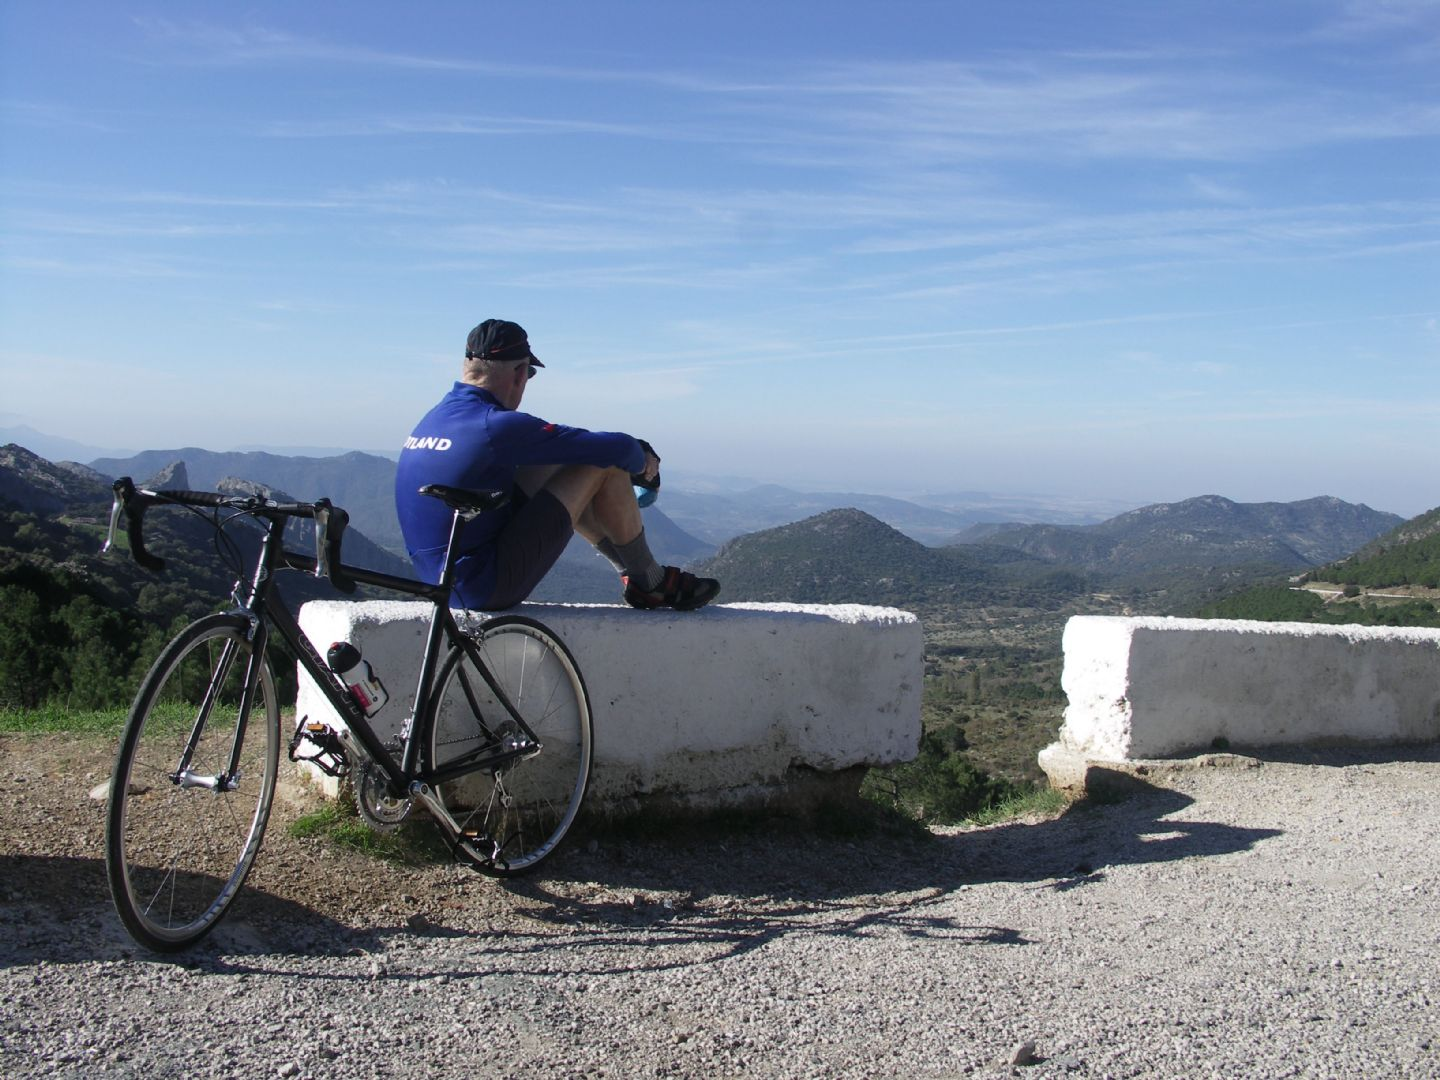 spainroad.jpg - Southern Spain - Roads of Ronda - Self-Guided Road Cycling Holiday - Road Cycling